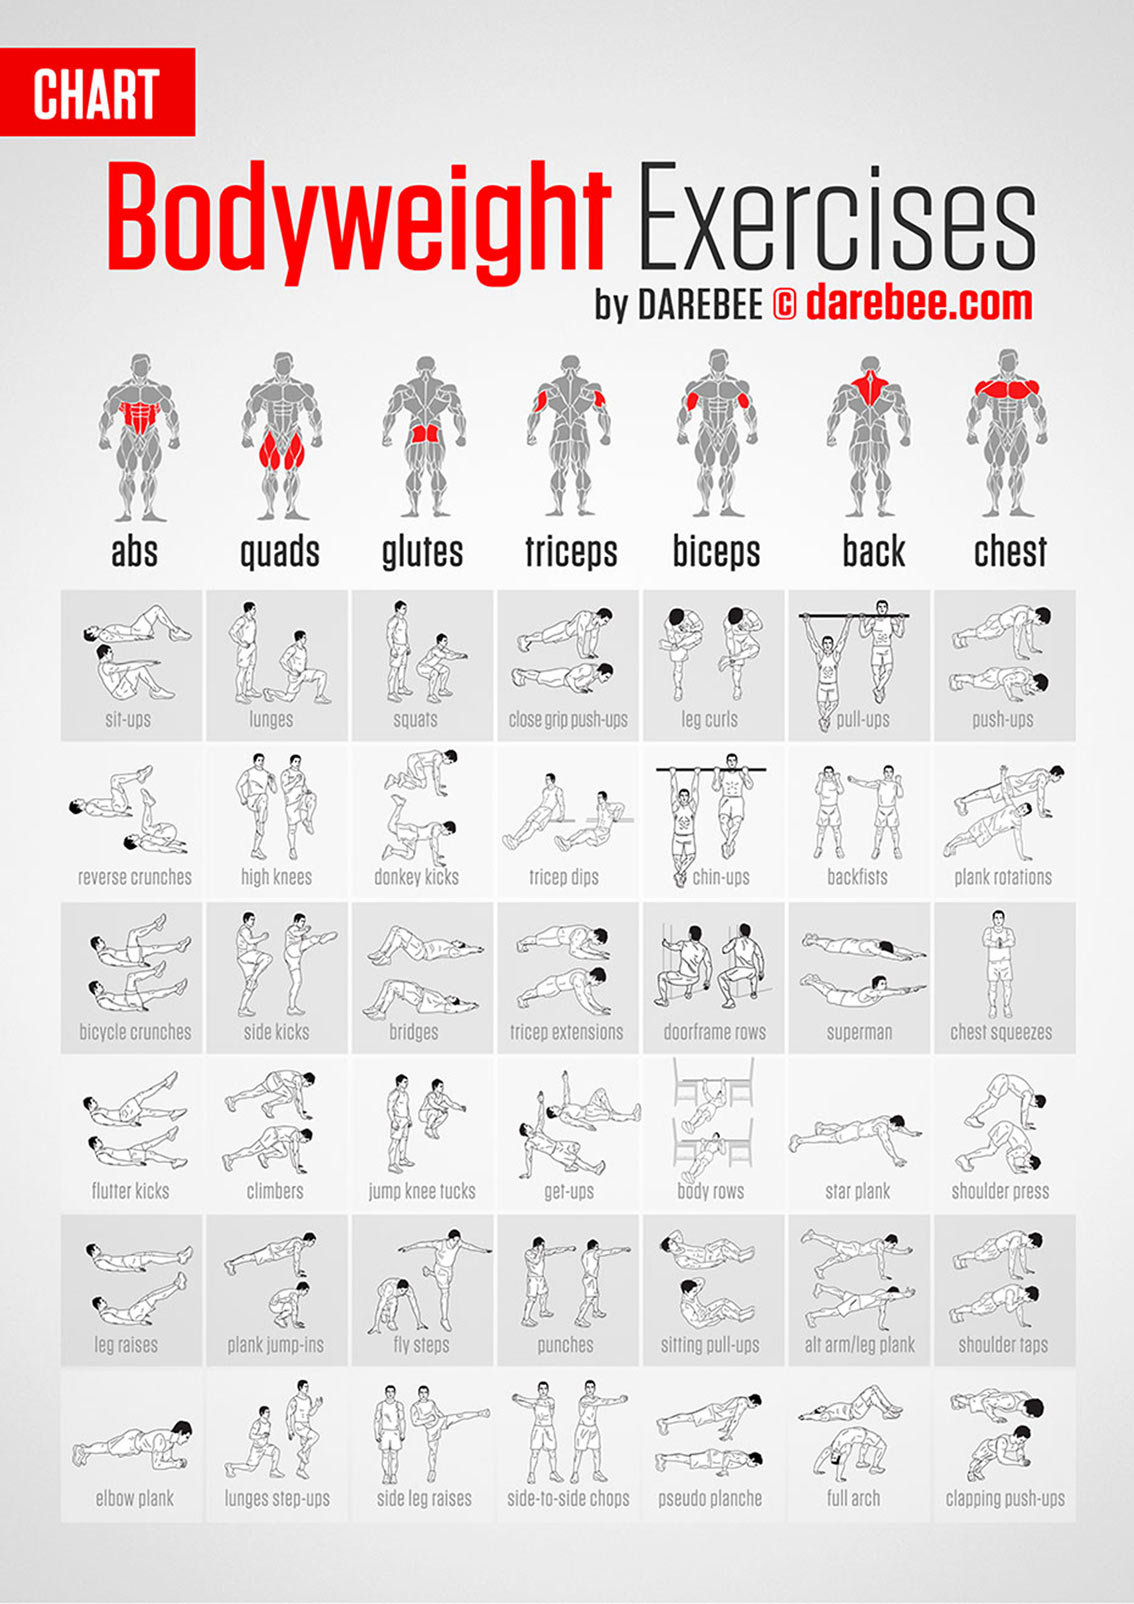 List of Bodyweight Exercises Infographic